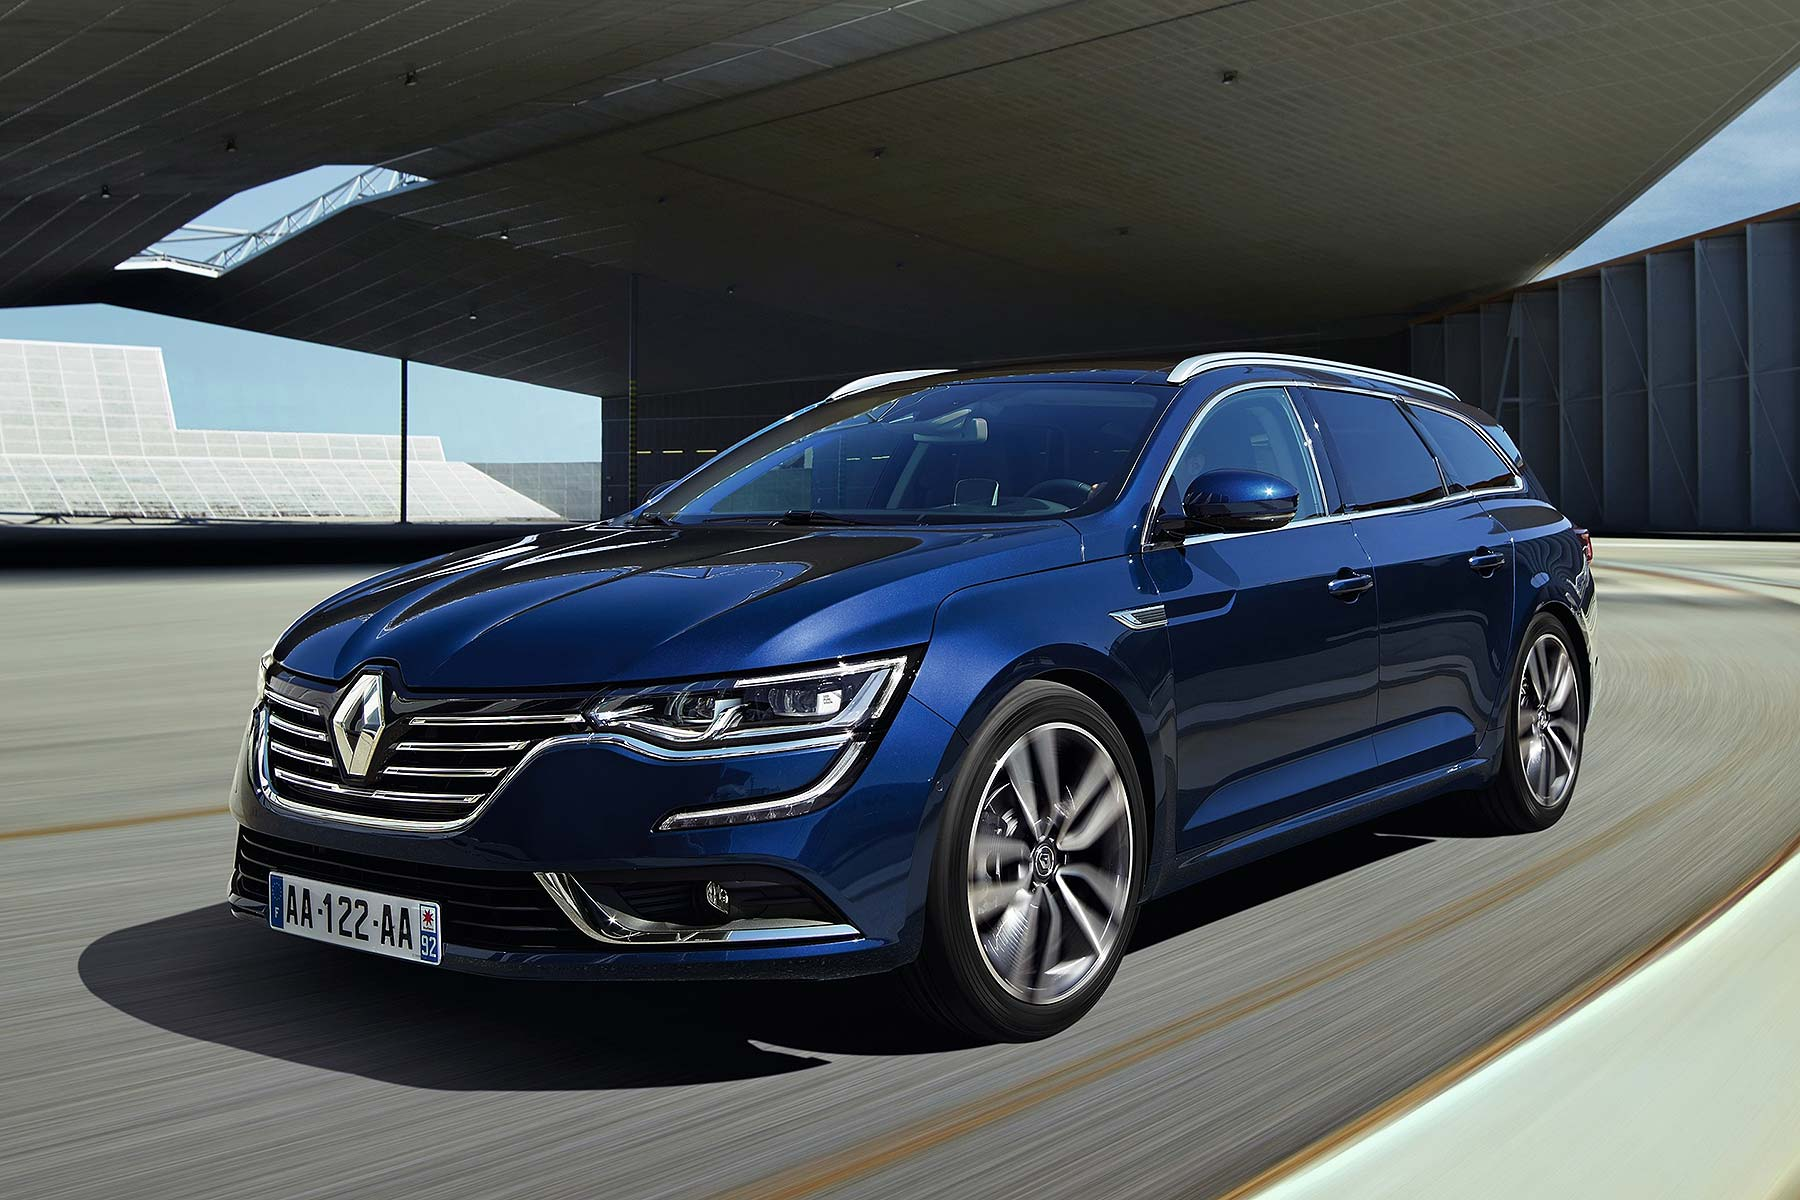 renault talisman estate revealed but it is not for britain motoring research. Black Bedroom Furniture Sets. Home Design Ideas